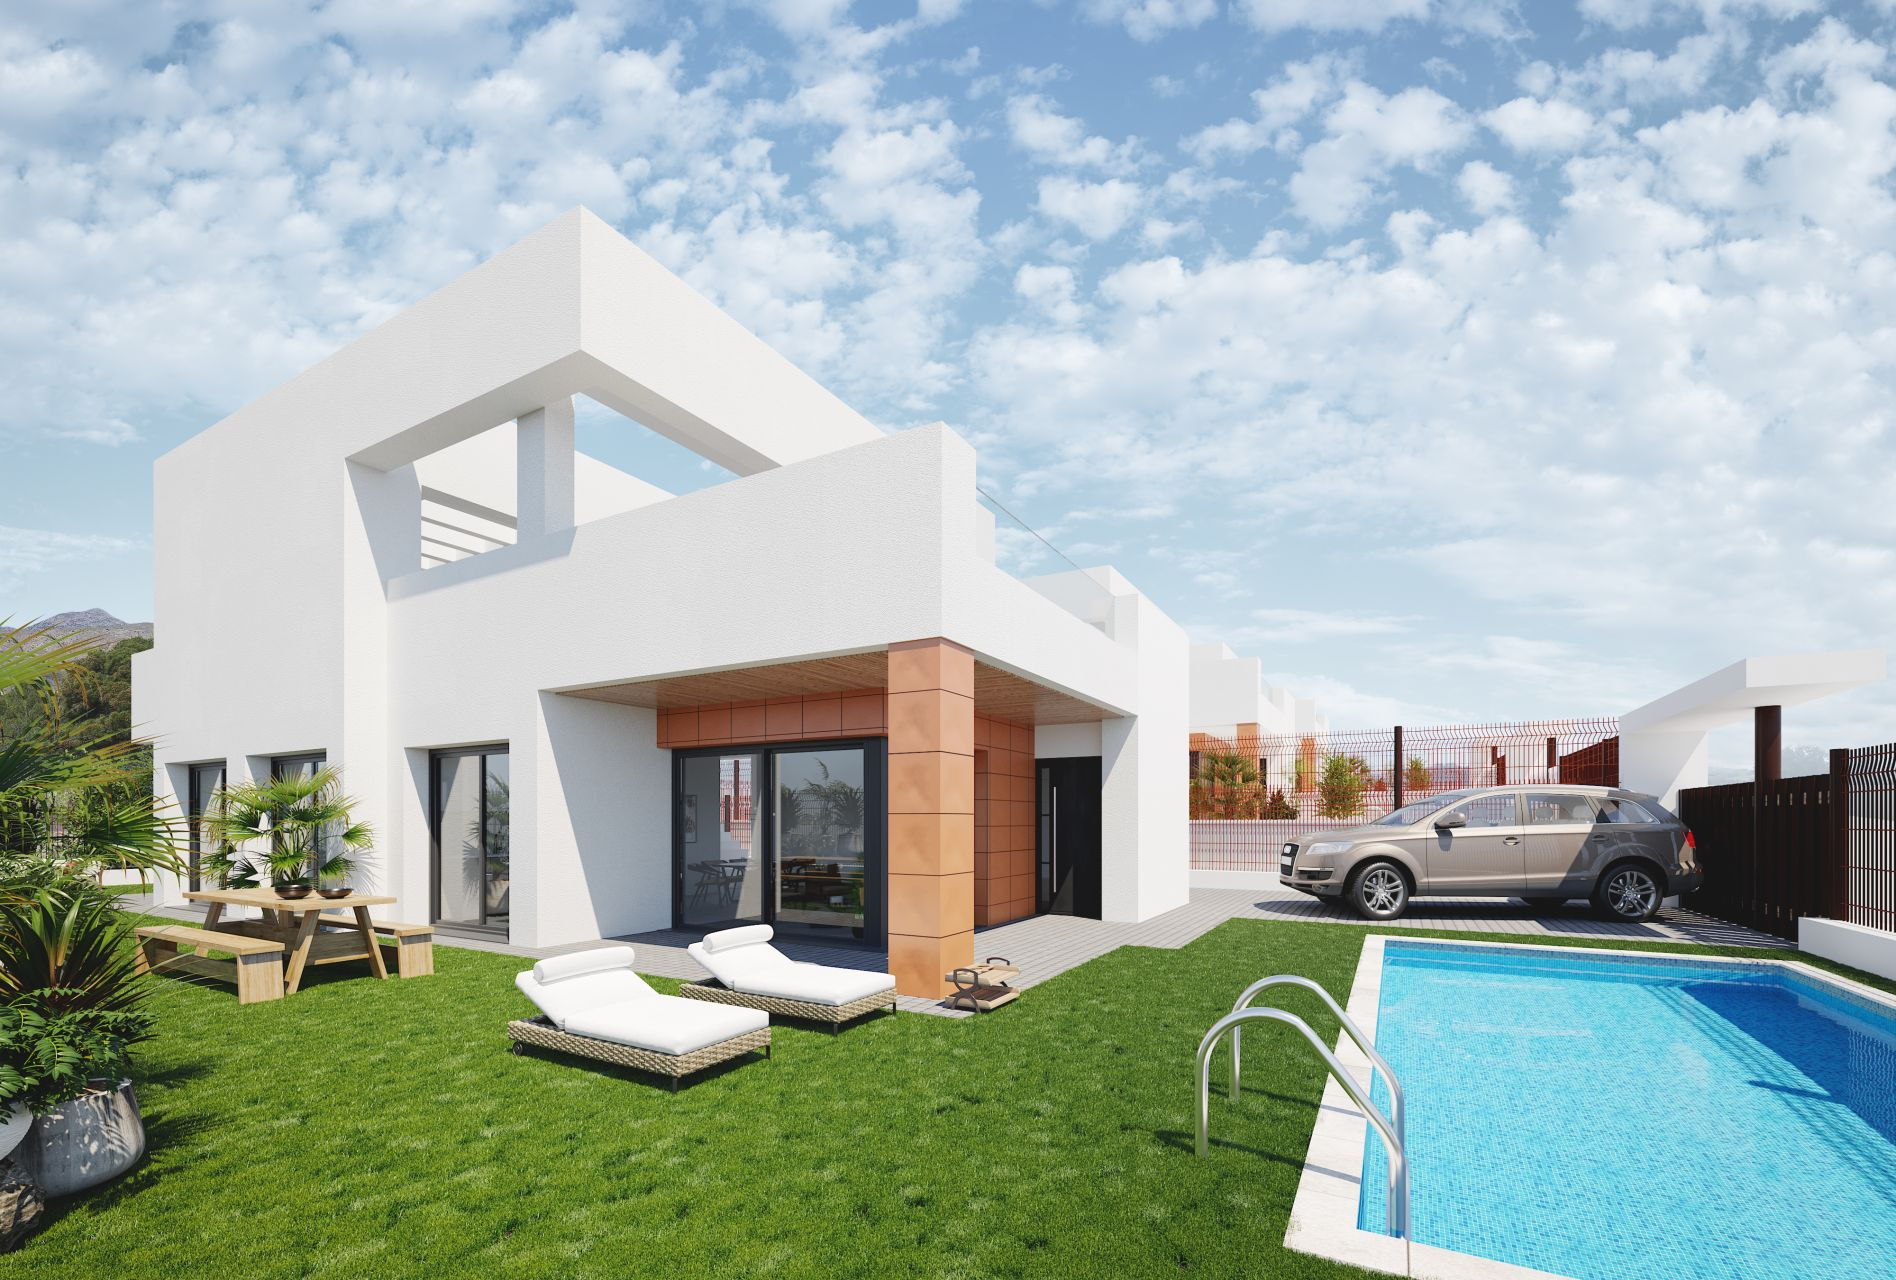 Villas unifamiliares en Finestrat 1